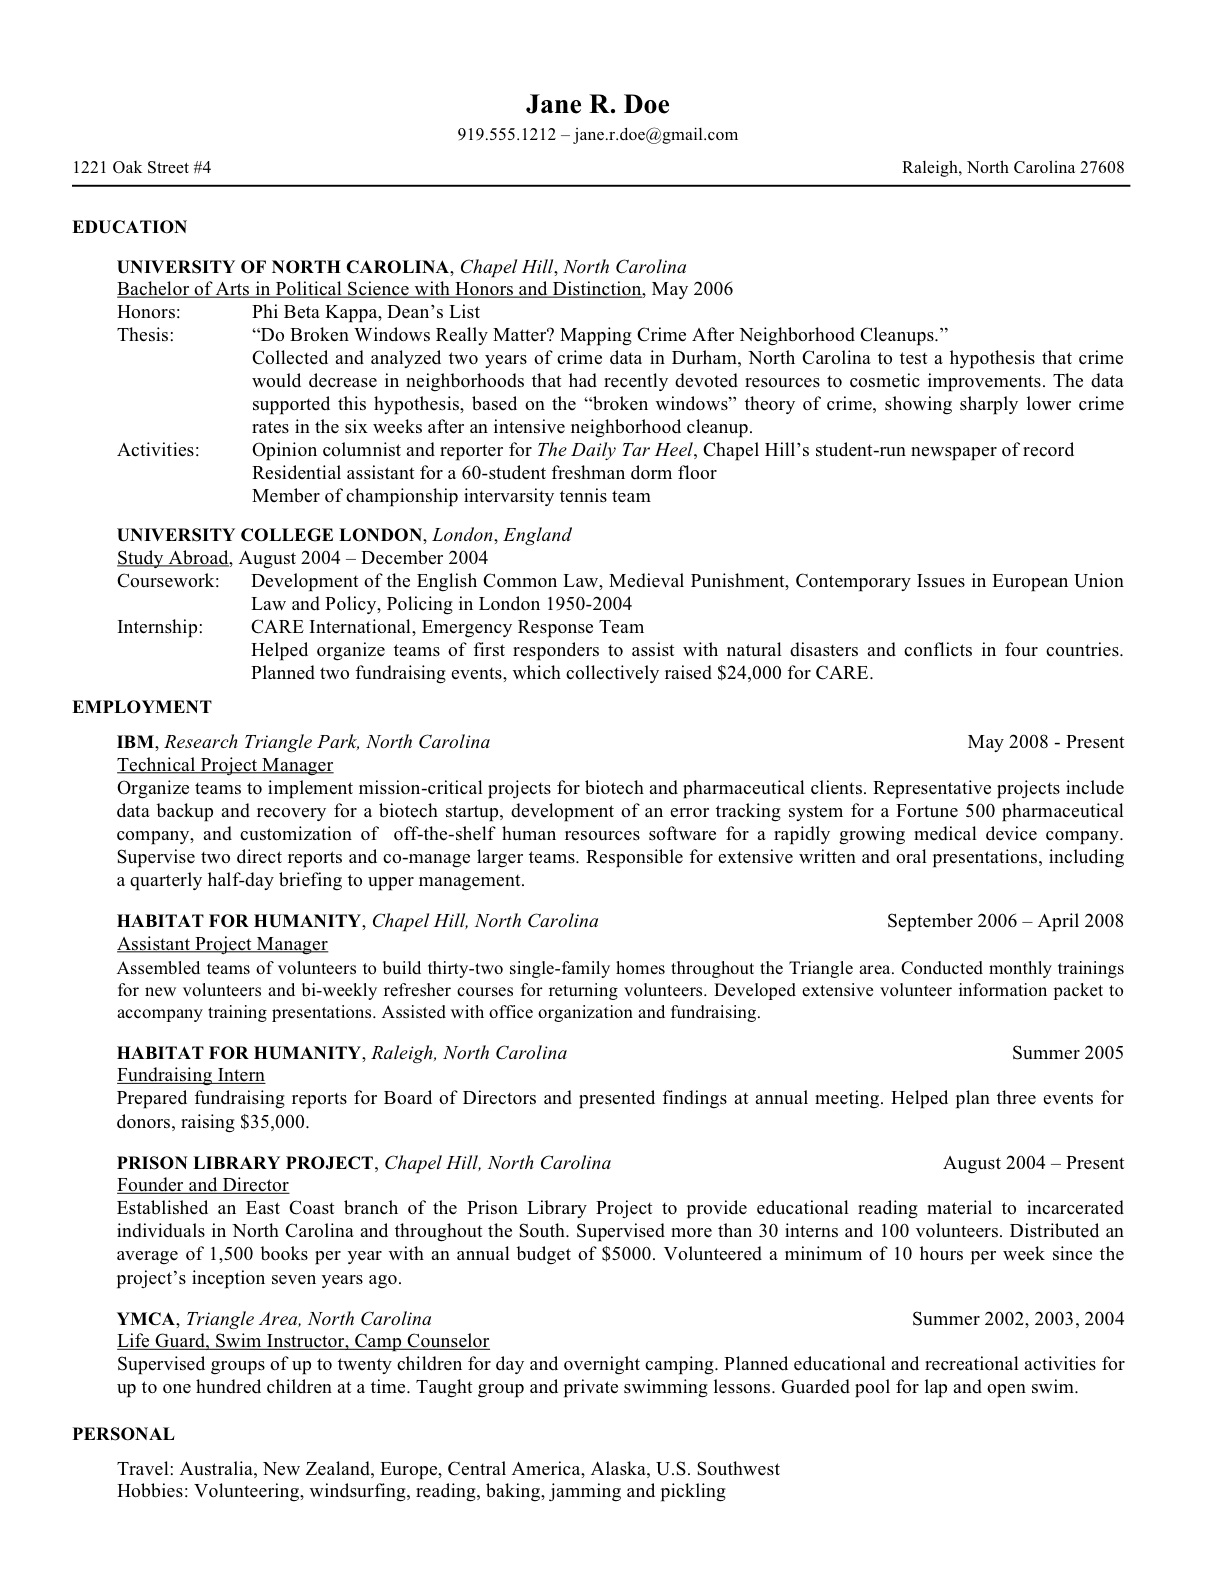 Salisbury University - Law School Resume Information